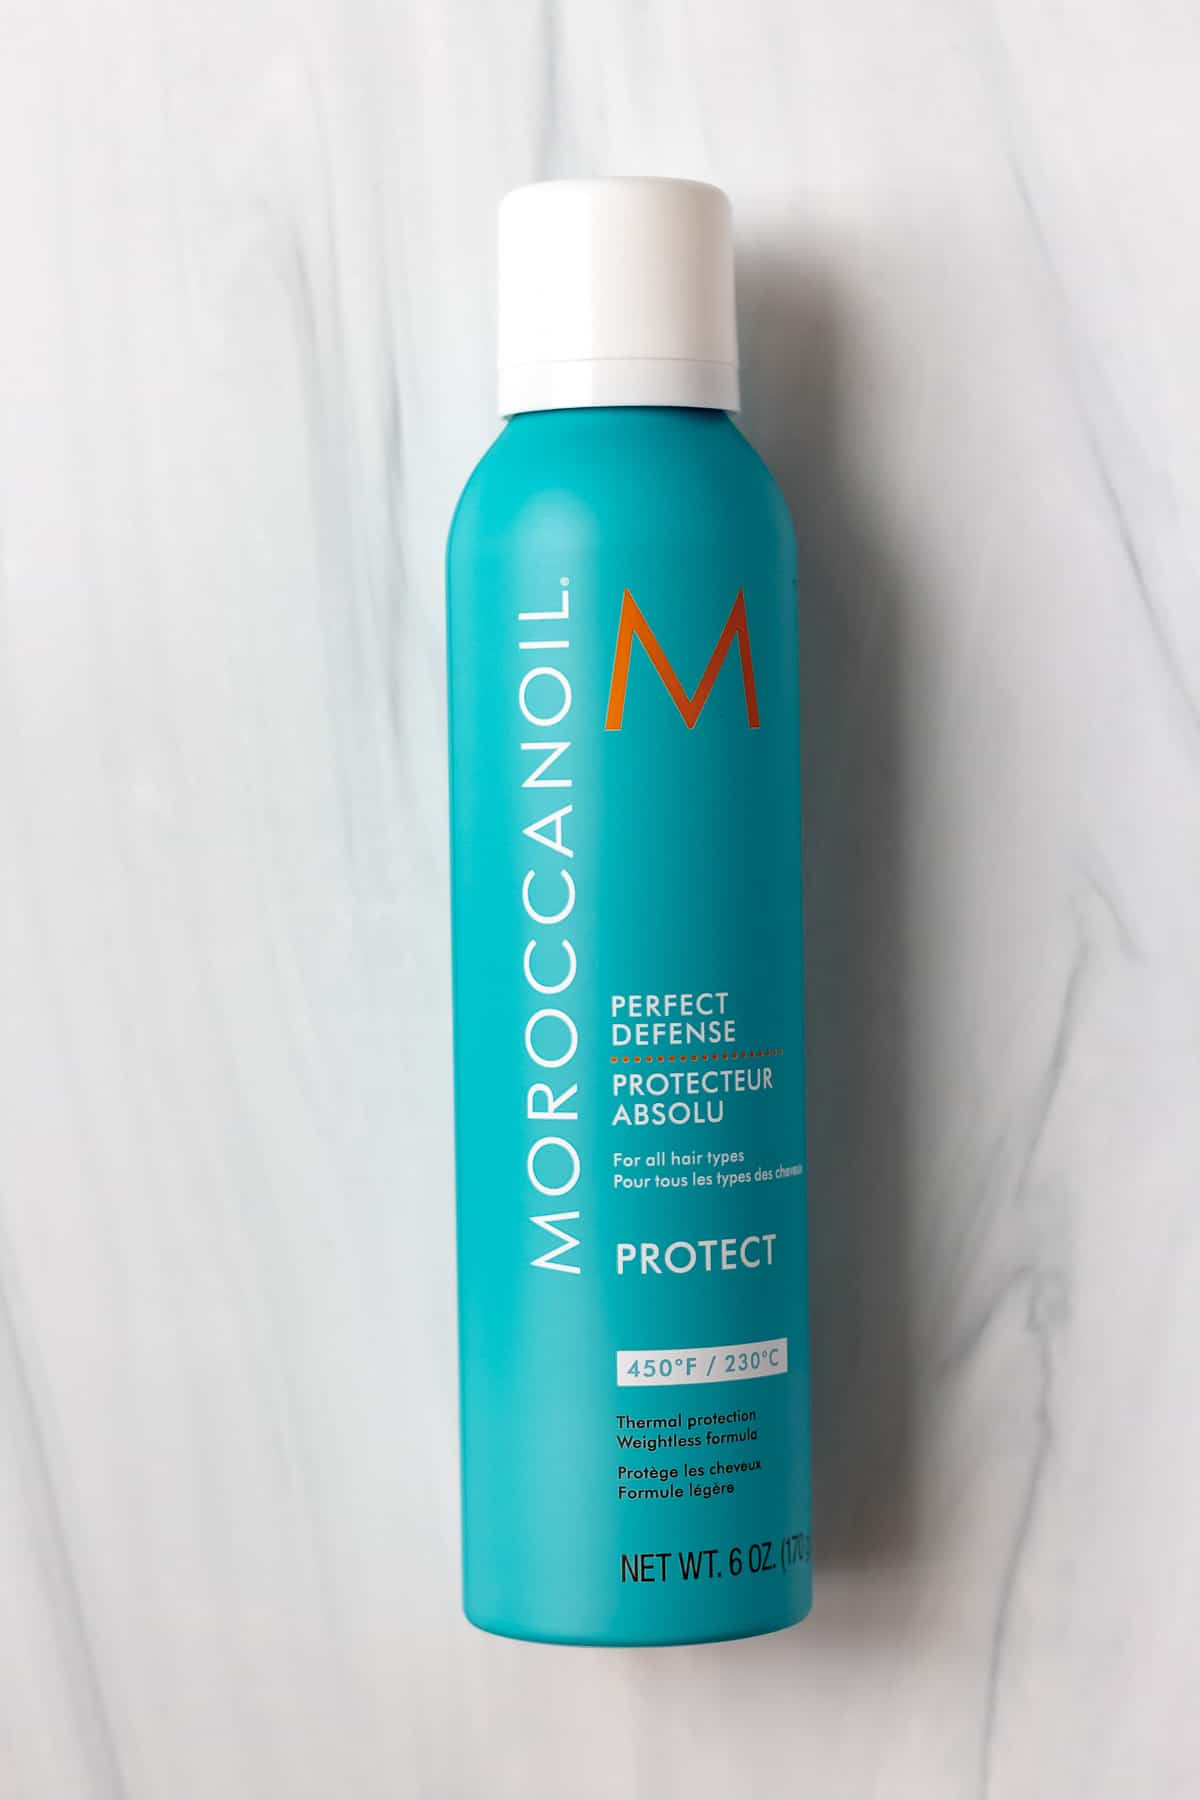 Moroccan Oil Perfect Defense on a white background